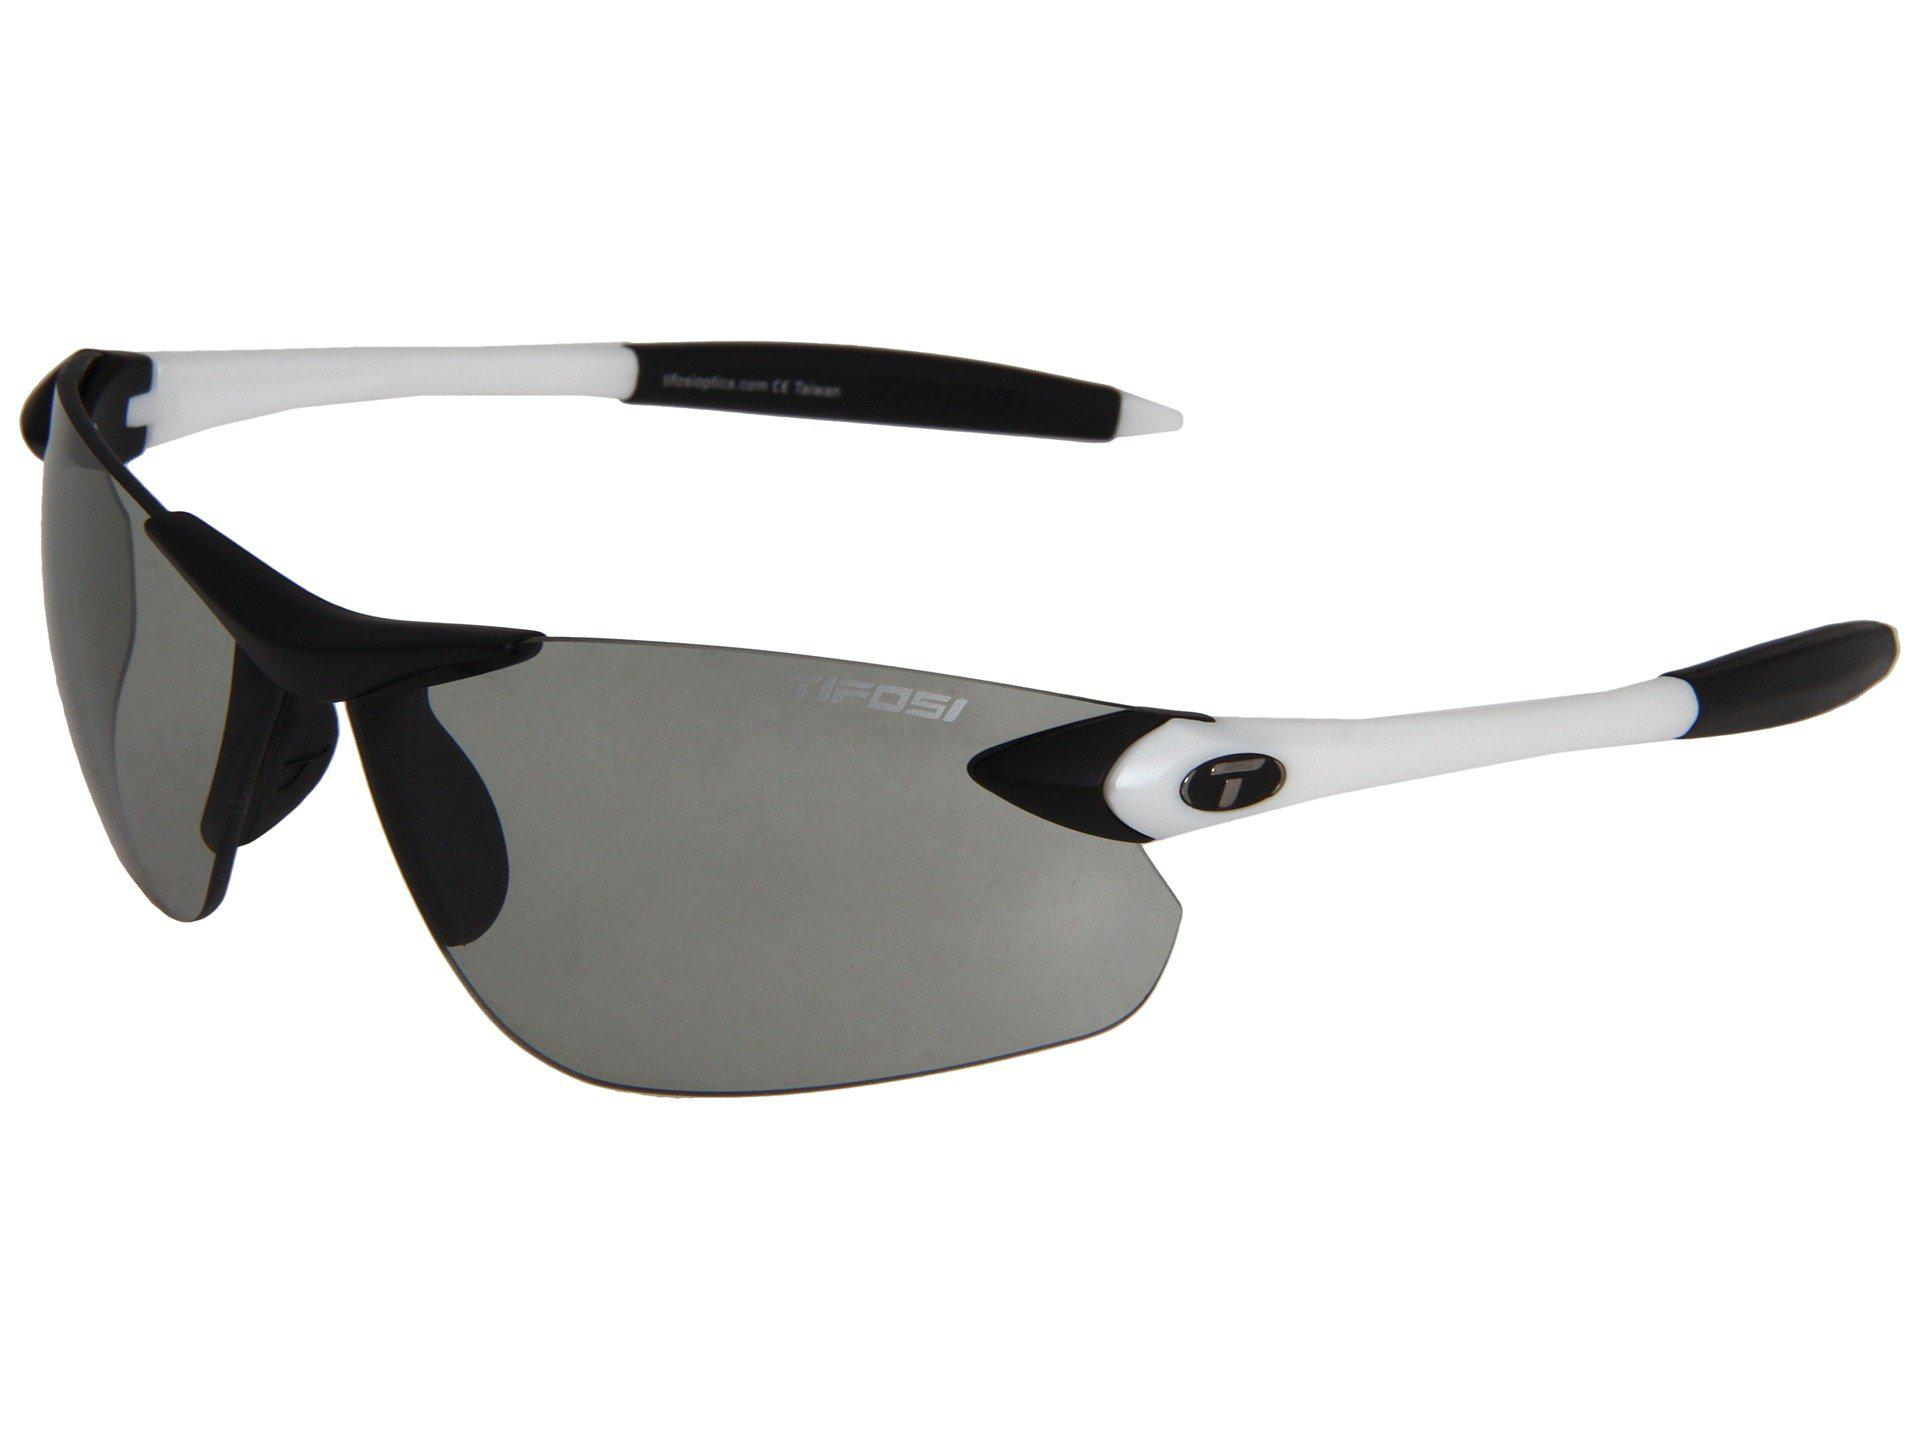 ba78bc56496 Lyst - Tifosi Optics Seektm Fototectm Fc - Smoke (white black  Smoke ...